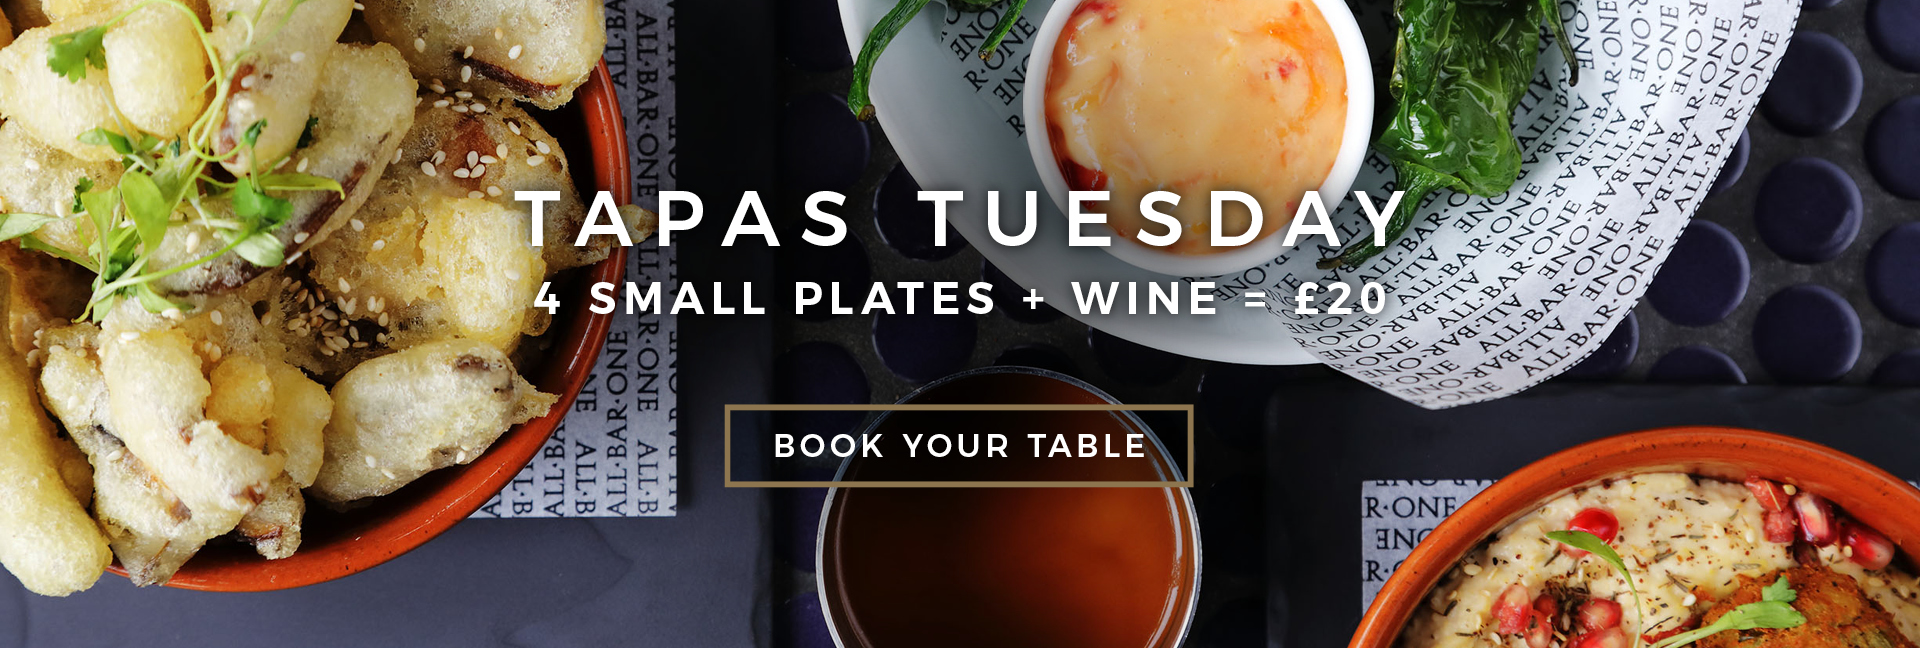 Tapas Tuesday at All Bar One West Quay - Book now